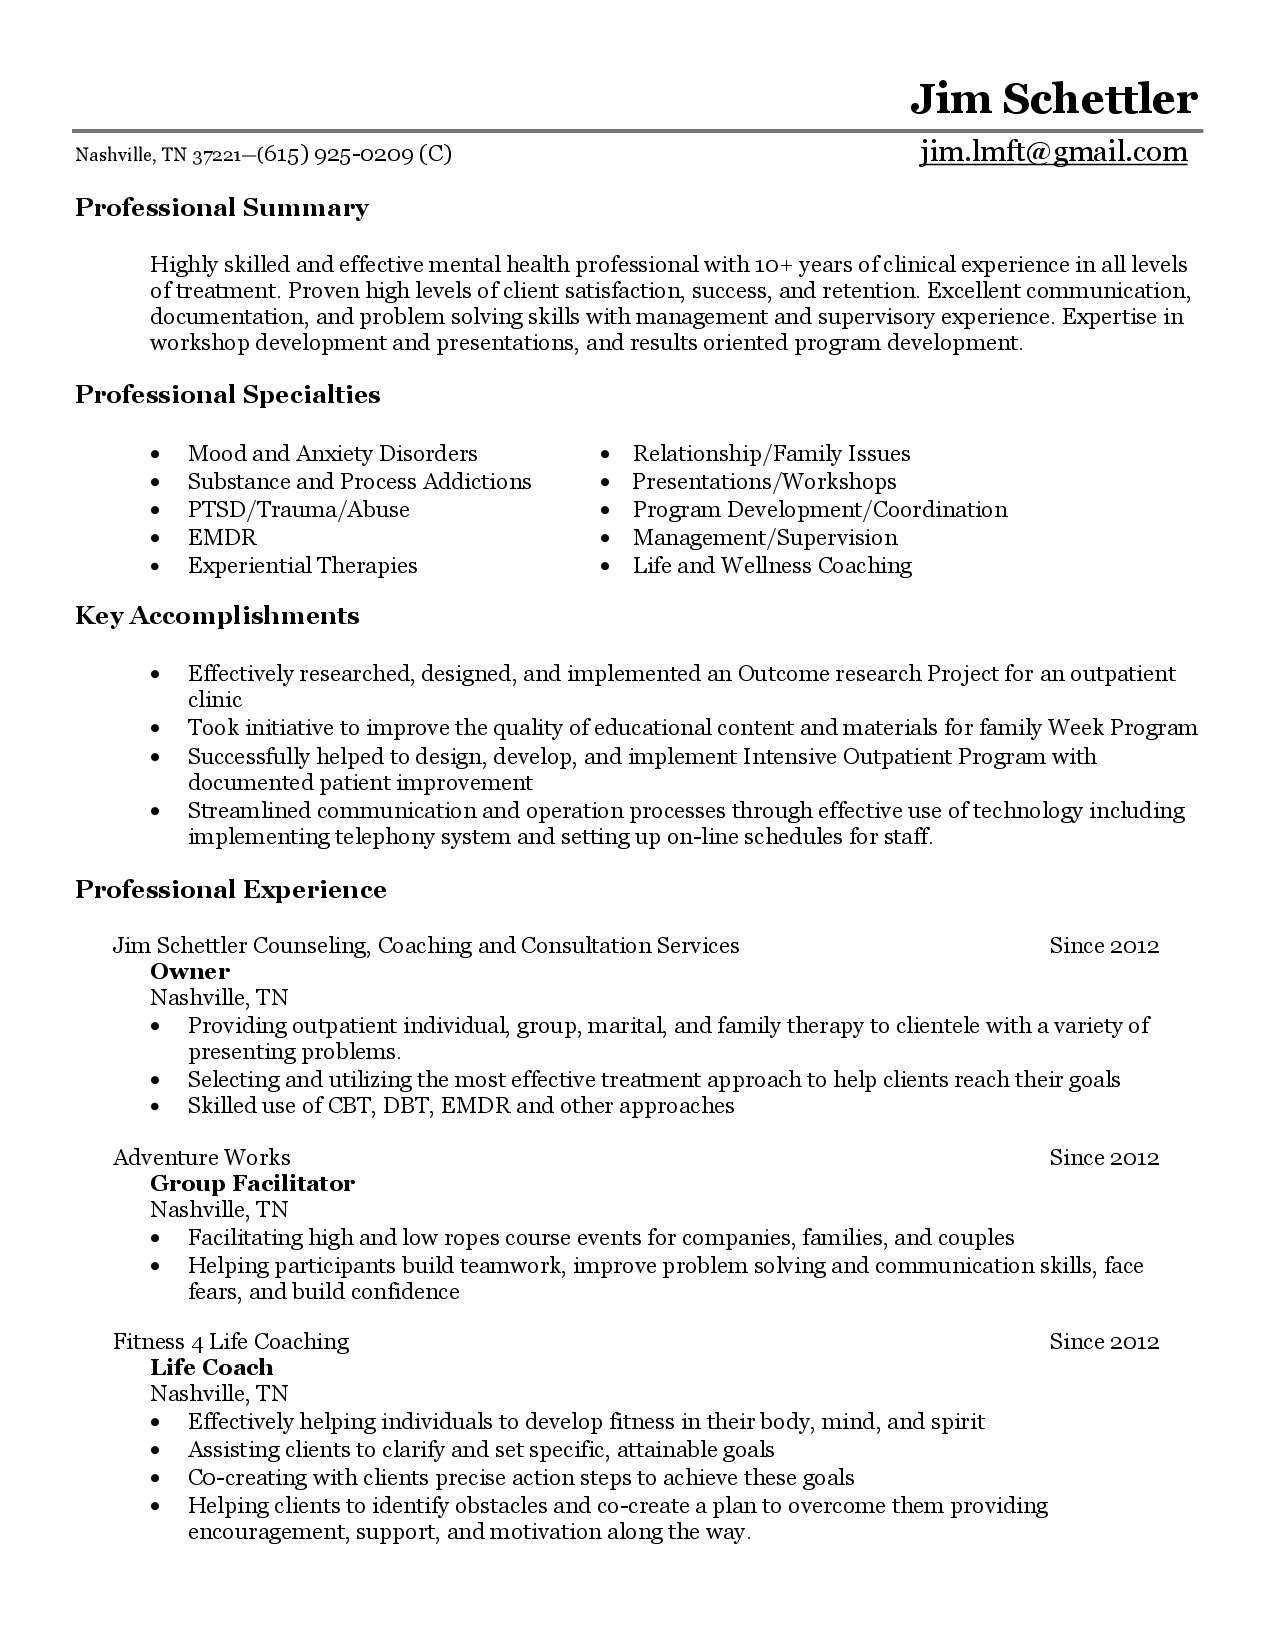 Behavioral Health Counselor Resume Sample  College Counselor Resume